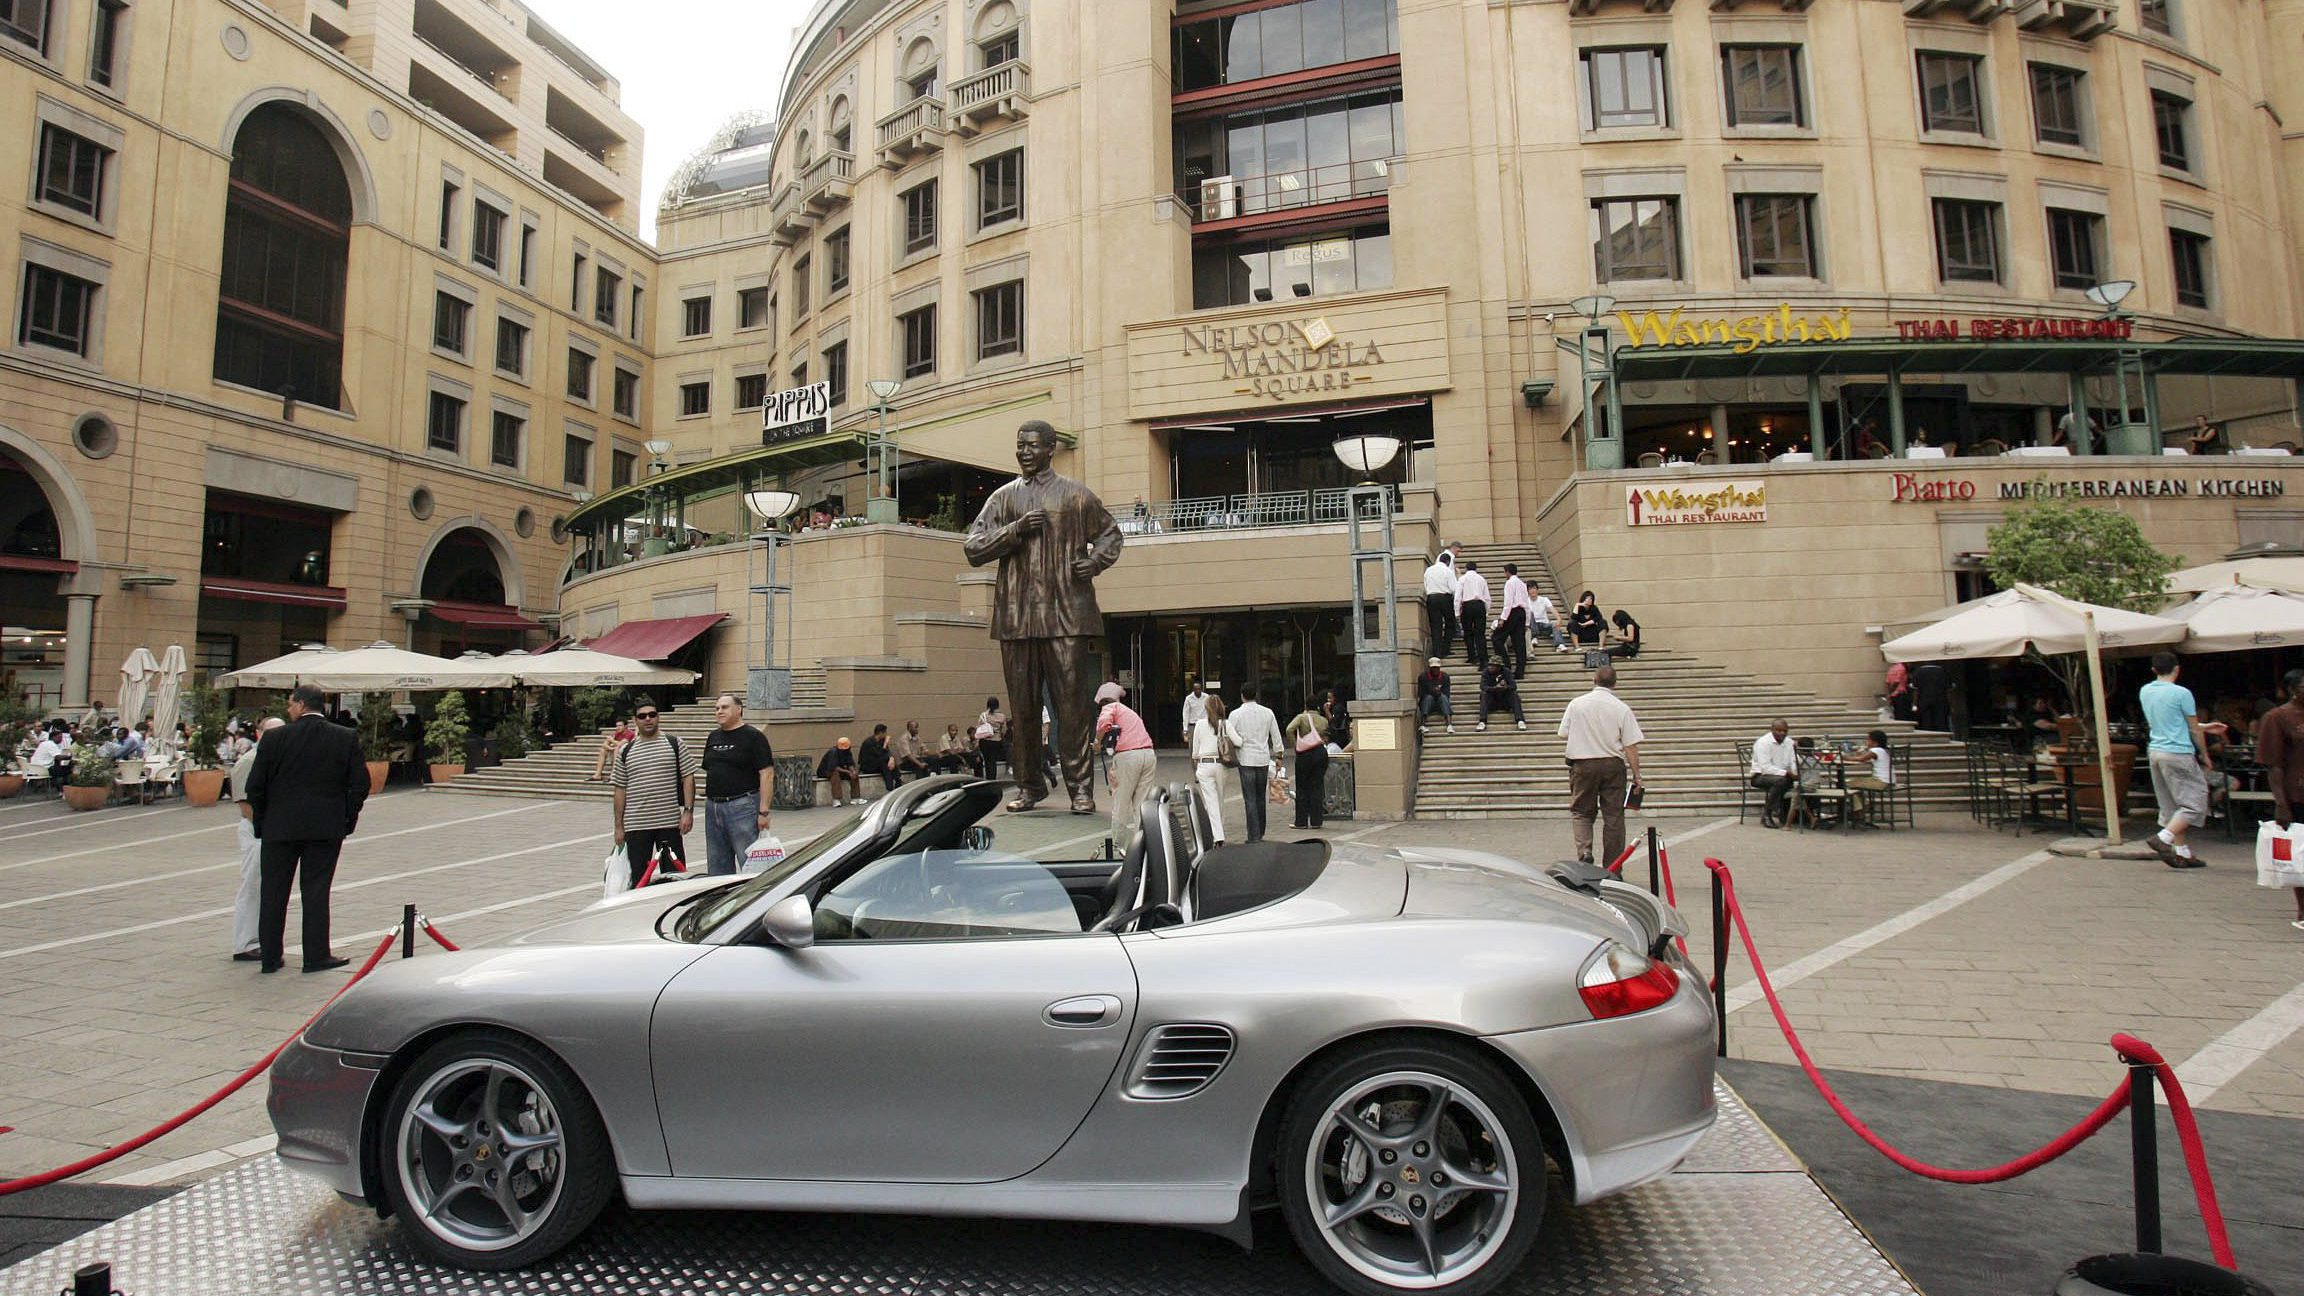 A luxury car is displayed in Johannesburg's Nelson Mandela Square October 28, 2006. Shopping seems to be the major pastime for well-off whites and blacks, fuelling a retail boom which the central bank admits it is struggling to choke, despite rising inflation.     REUTERS/Siphiwe Sibeko (SOUTH AFRICA) - RTR1ISDZ